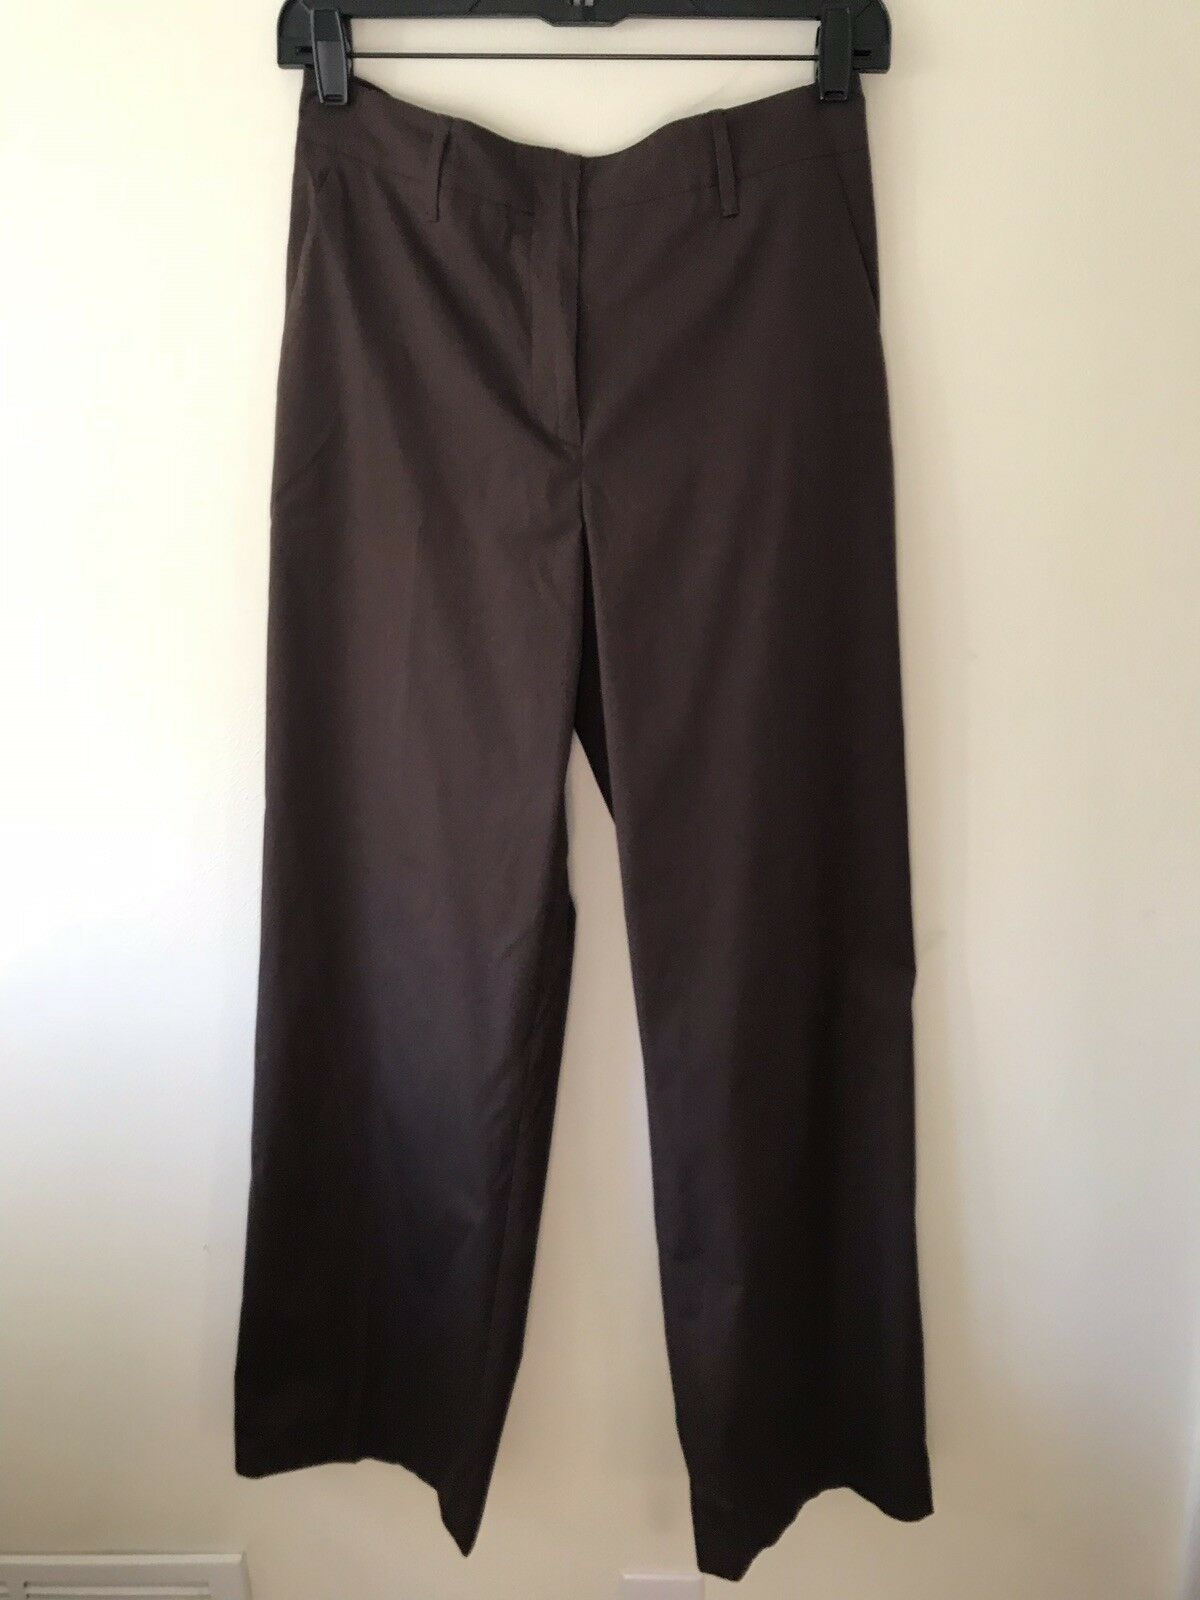 100% Authentic Prada Preowned Brown Pants Sz 40I  6 US